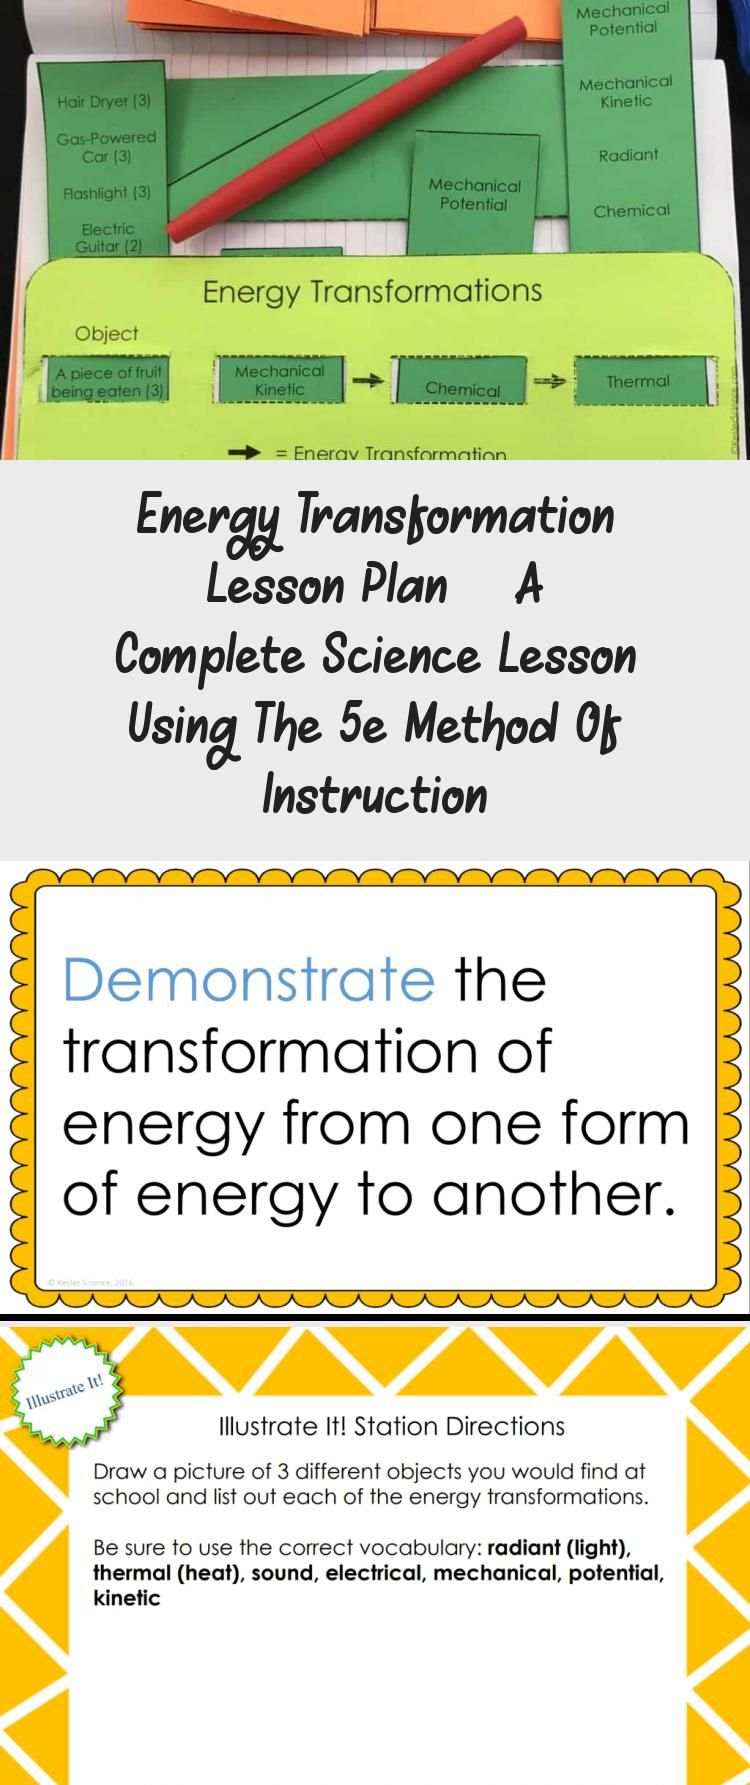 Energy Transformations 5e Lesson Plan Ready To Print And Teach The Entire Energy Unit Interactive Science Notebook Energy Transformations Middle School Science